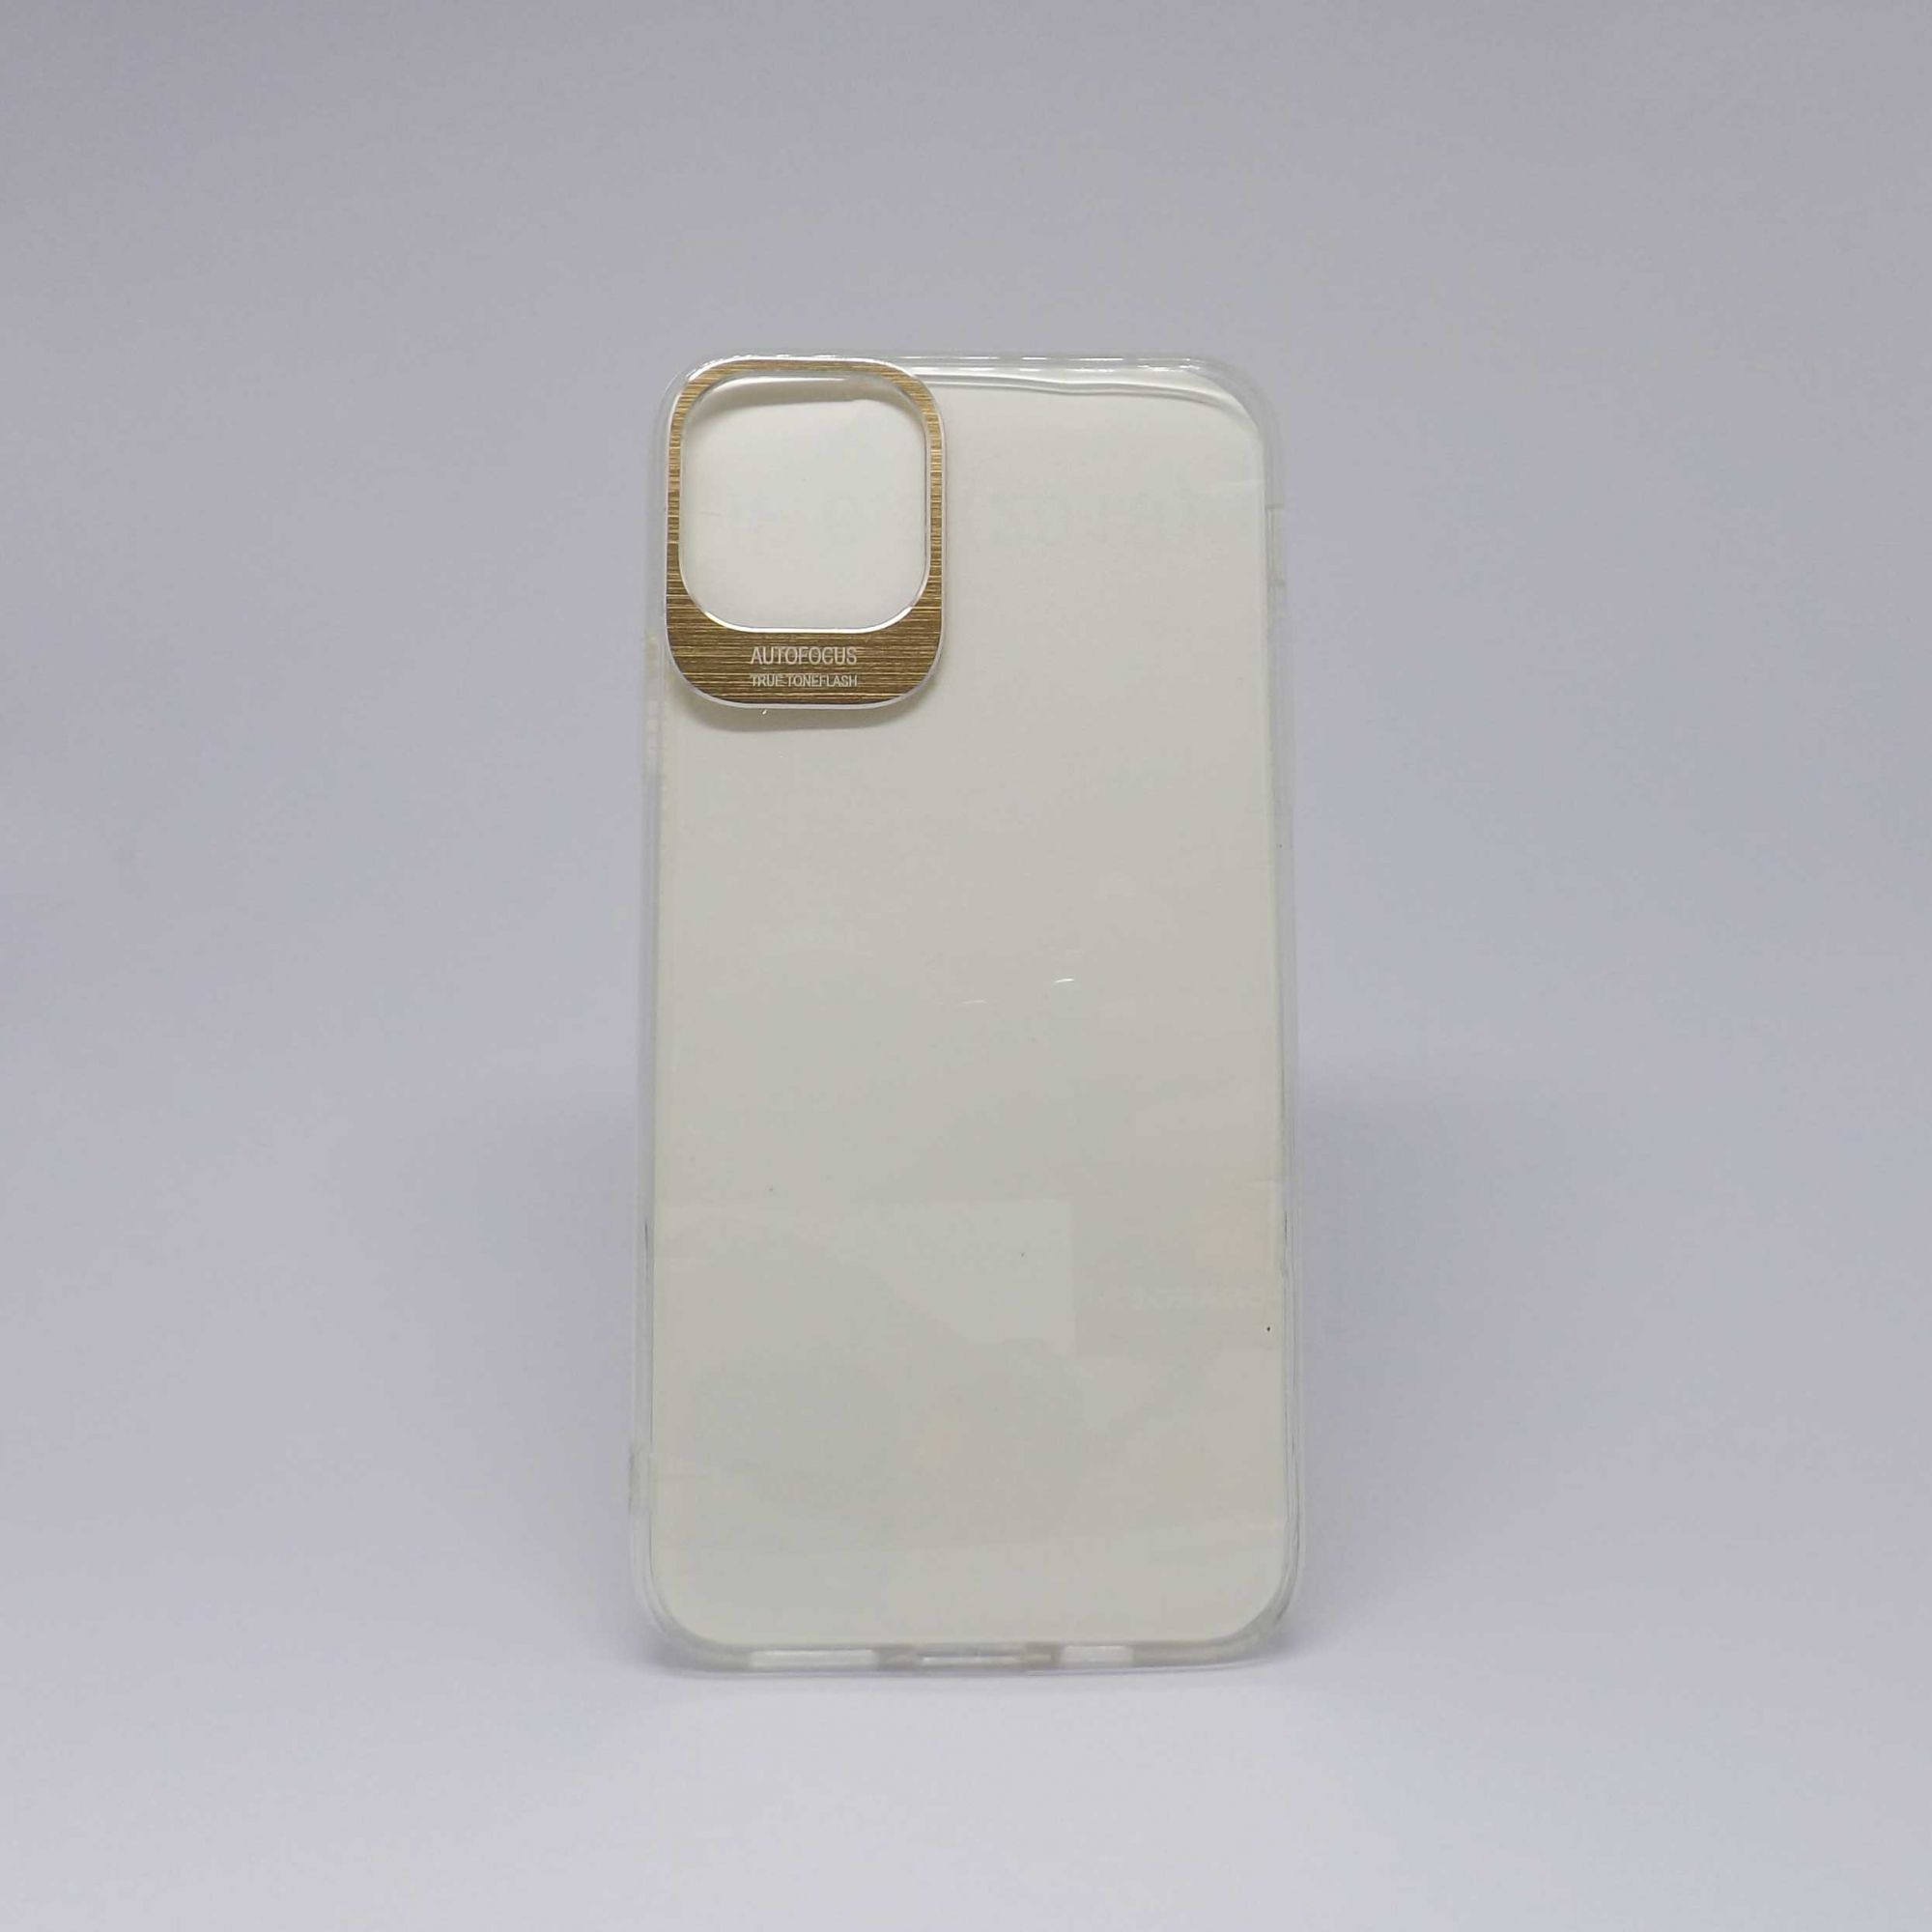 Capa iPhone 11 Pro Max Antiqueda Transparente com Borda Metalizada